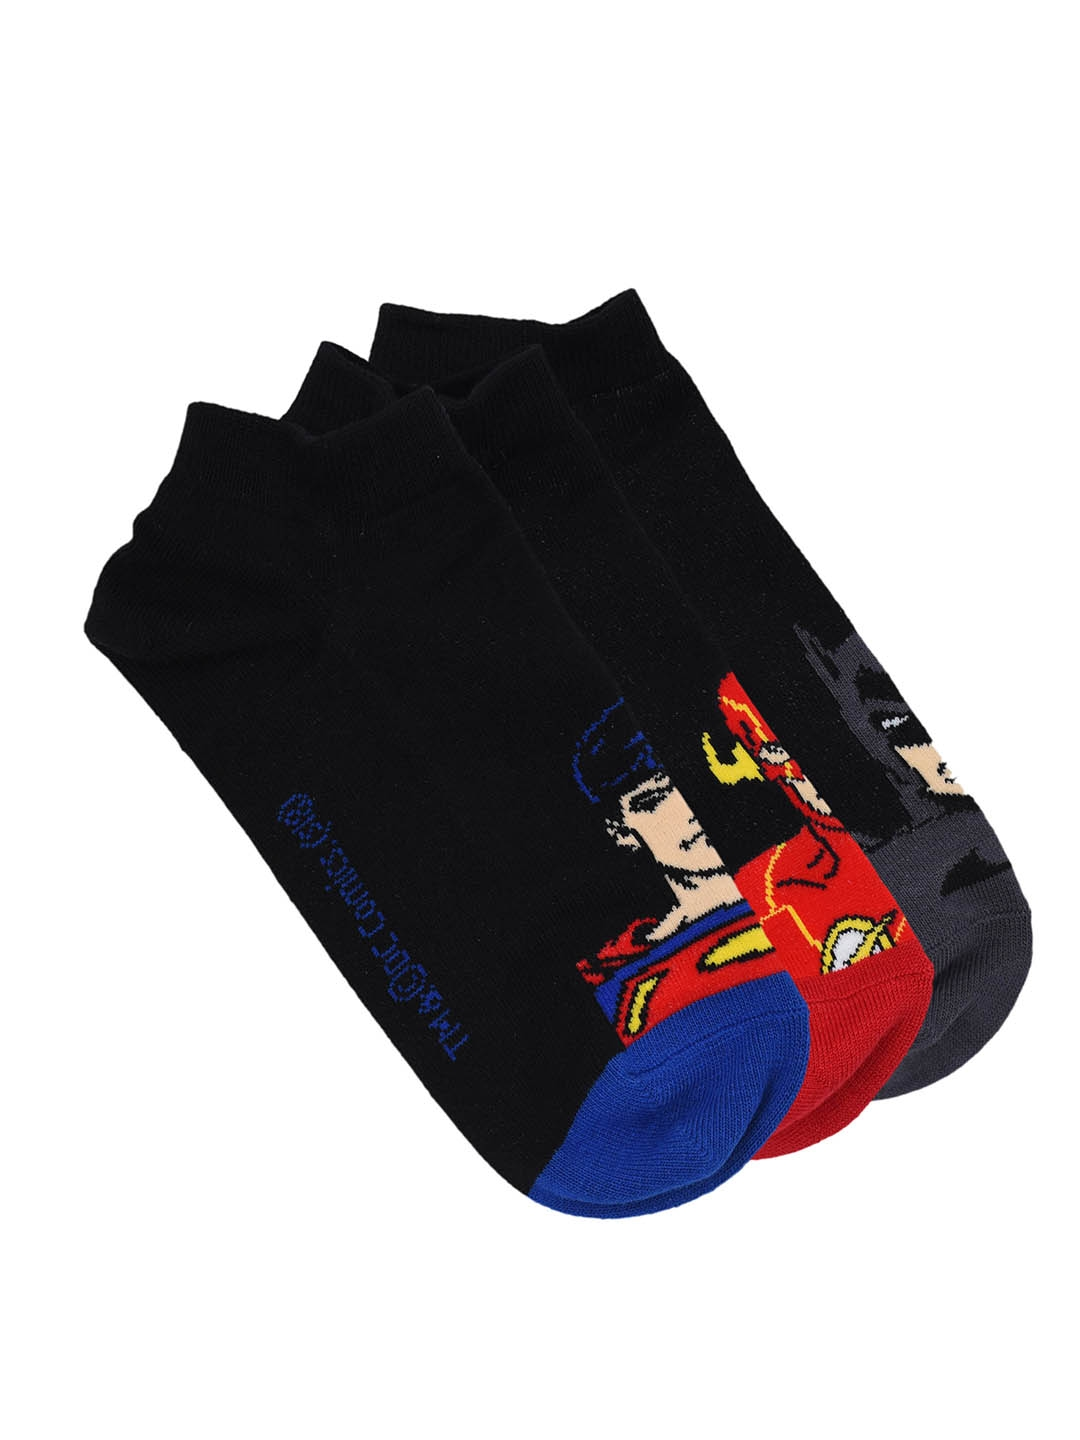 Justice League Men Pack of 3 Assorted Ankle Length Socks